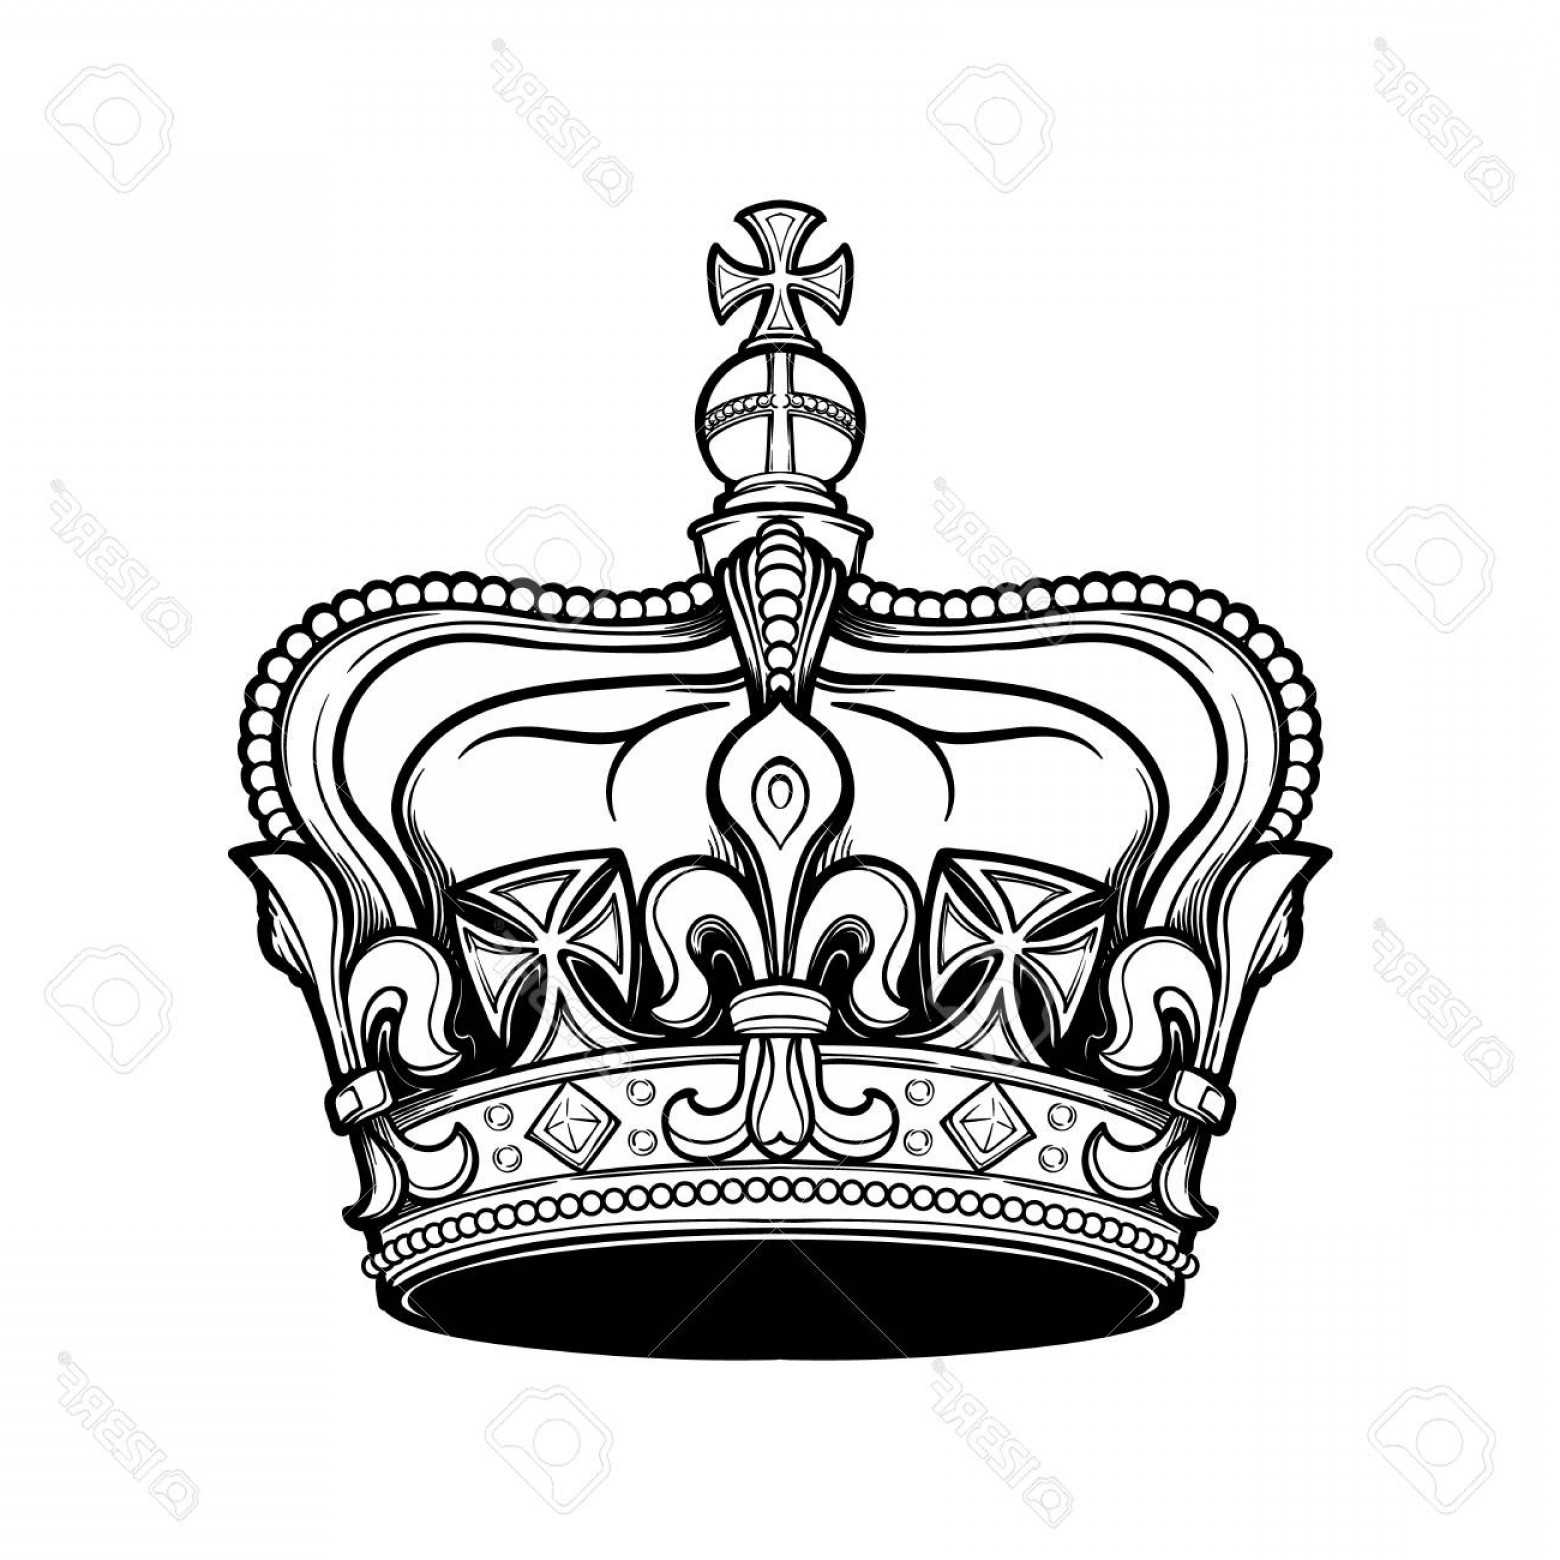 Detailed Tattoo Vector Images: Photostock Vector Filigree High Detailed British Imperial Crown Element For Design Logo Emblem And Tattoo Vector Illus